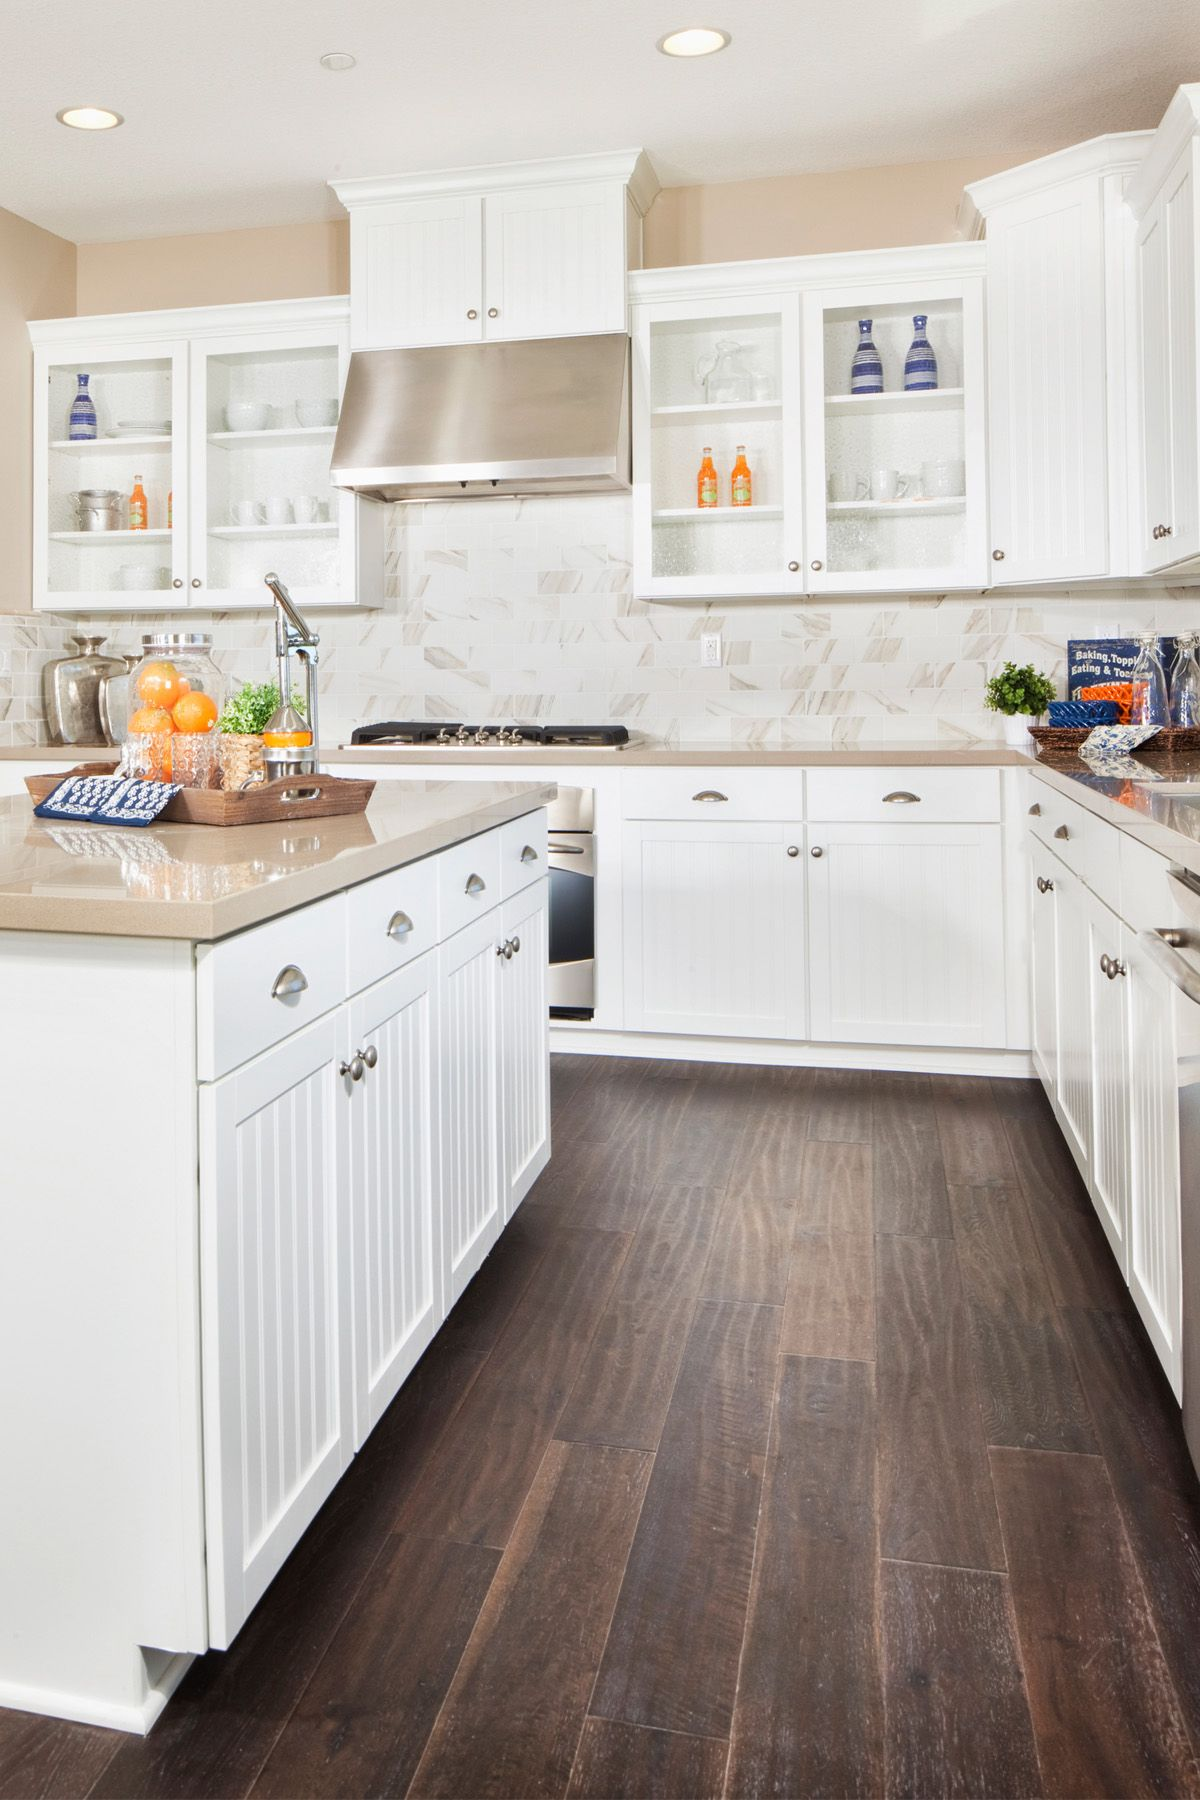 15 Kitchen Trends Designers Never Want to See Again - Kitchen Trends on different colored kitchen cabinets, mixed wood cabinets, kitchens with painted and stained cabinets, kitchen with mismatched appliances, kitchen addition ideas, kitchen cabinet glass front doors, kitchen with mixed wood colors, mixed kitchen cabinets, kitchen with mismatched tile, different styles of kitchen cabinets,